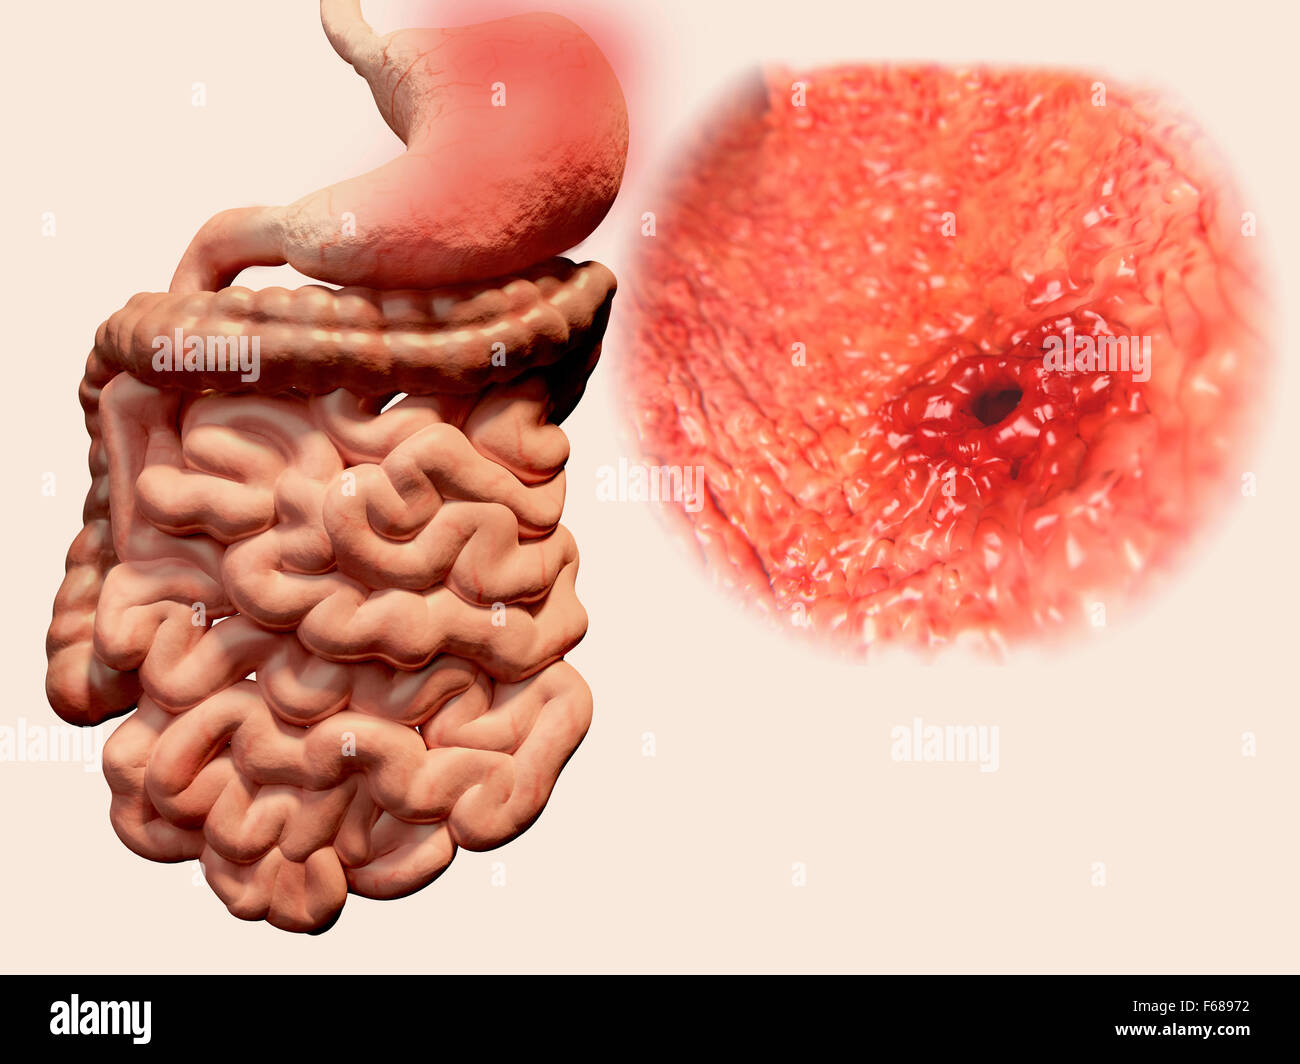 gastric (stomach) ulcer, illustration. gastric, or peptic, ulcers, Skeleton